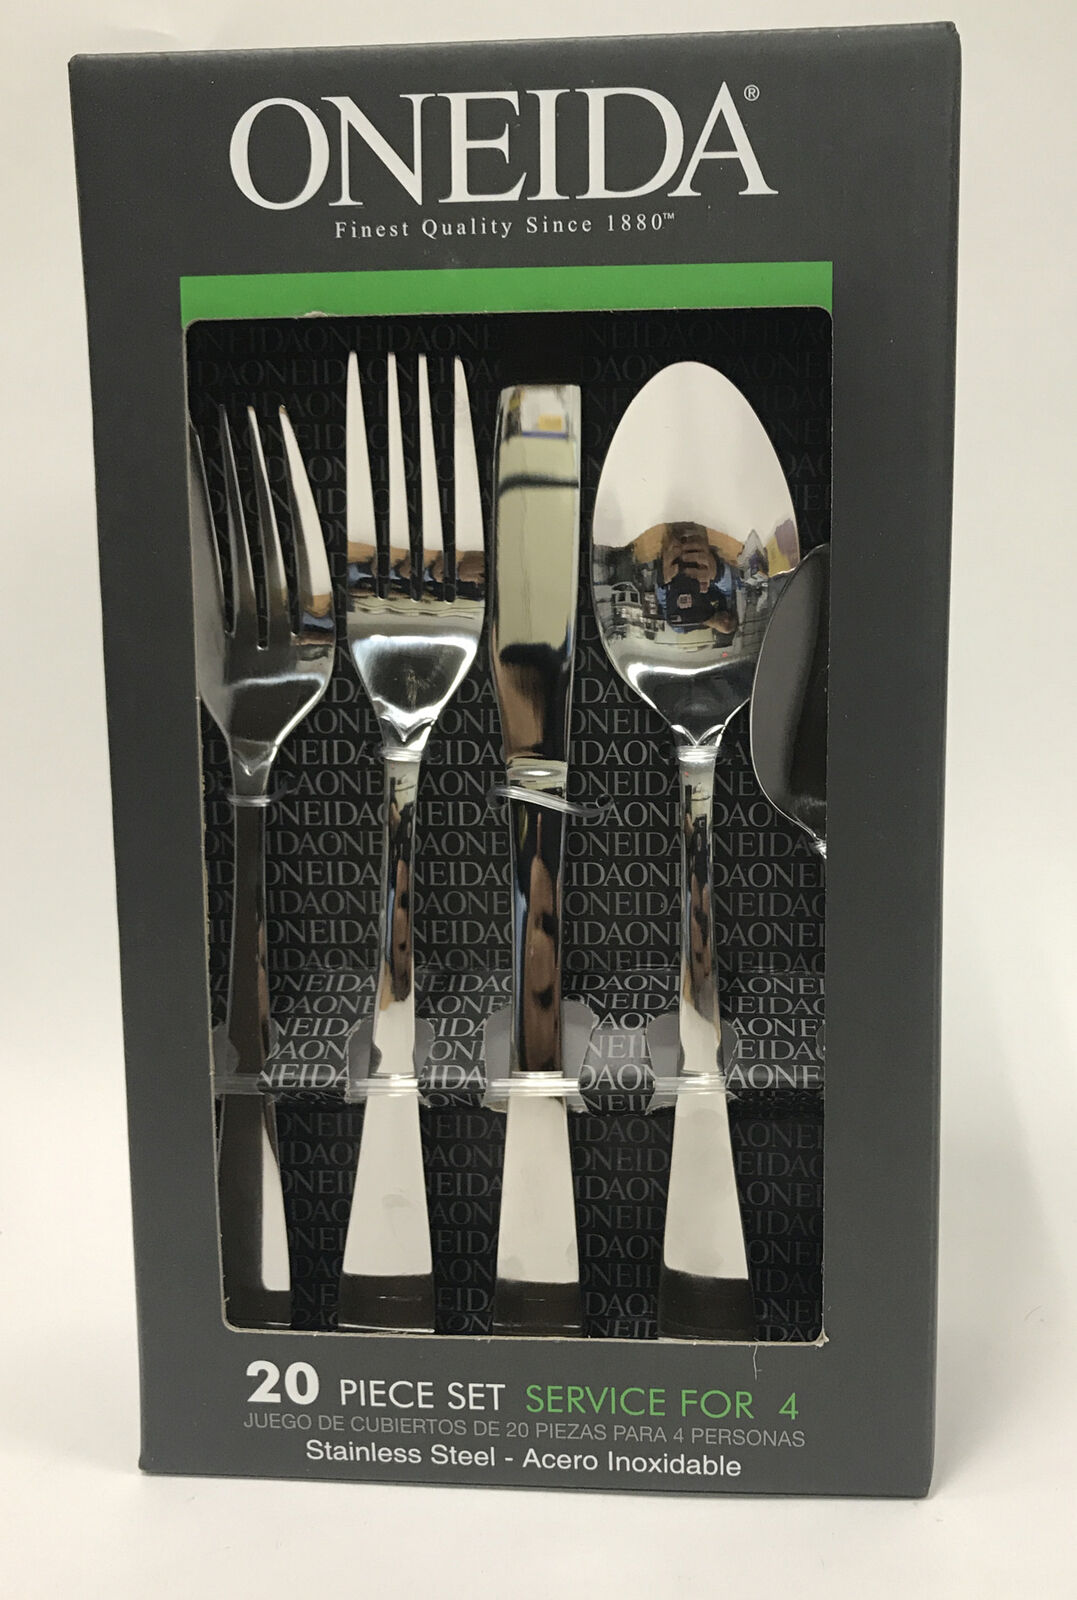 Oneida Juilliard 20 Piece Stainless Flatware Set Service For 4 With Bamboo For Sale Online Ebay